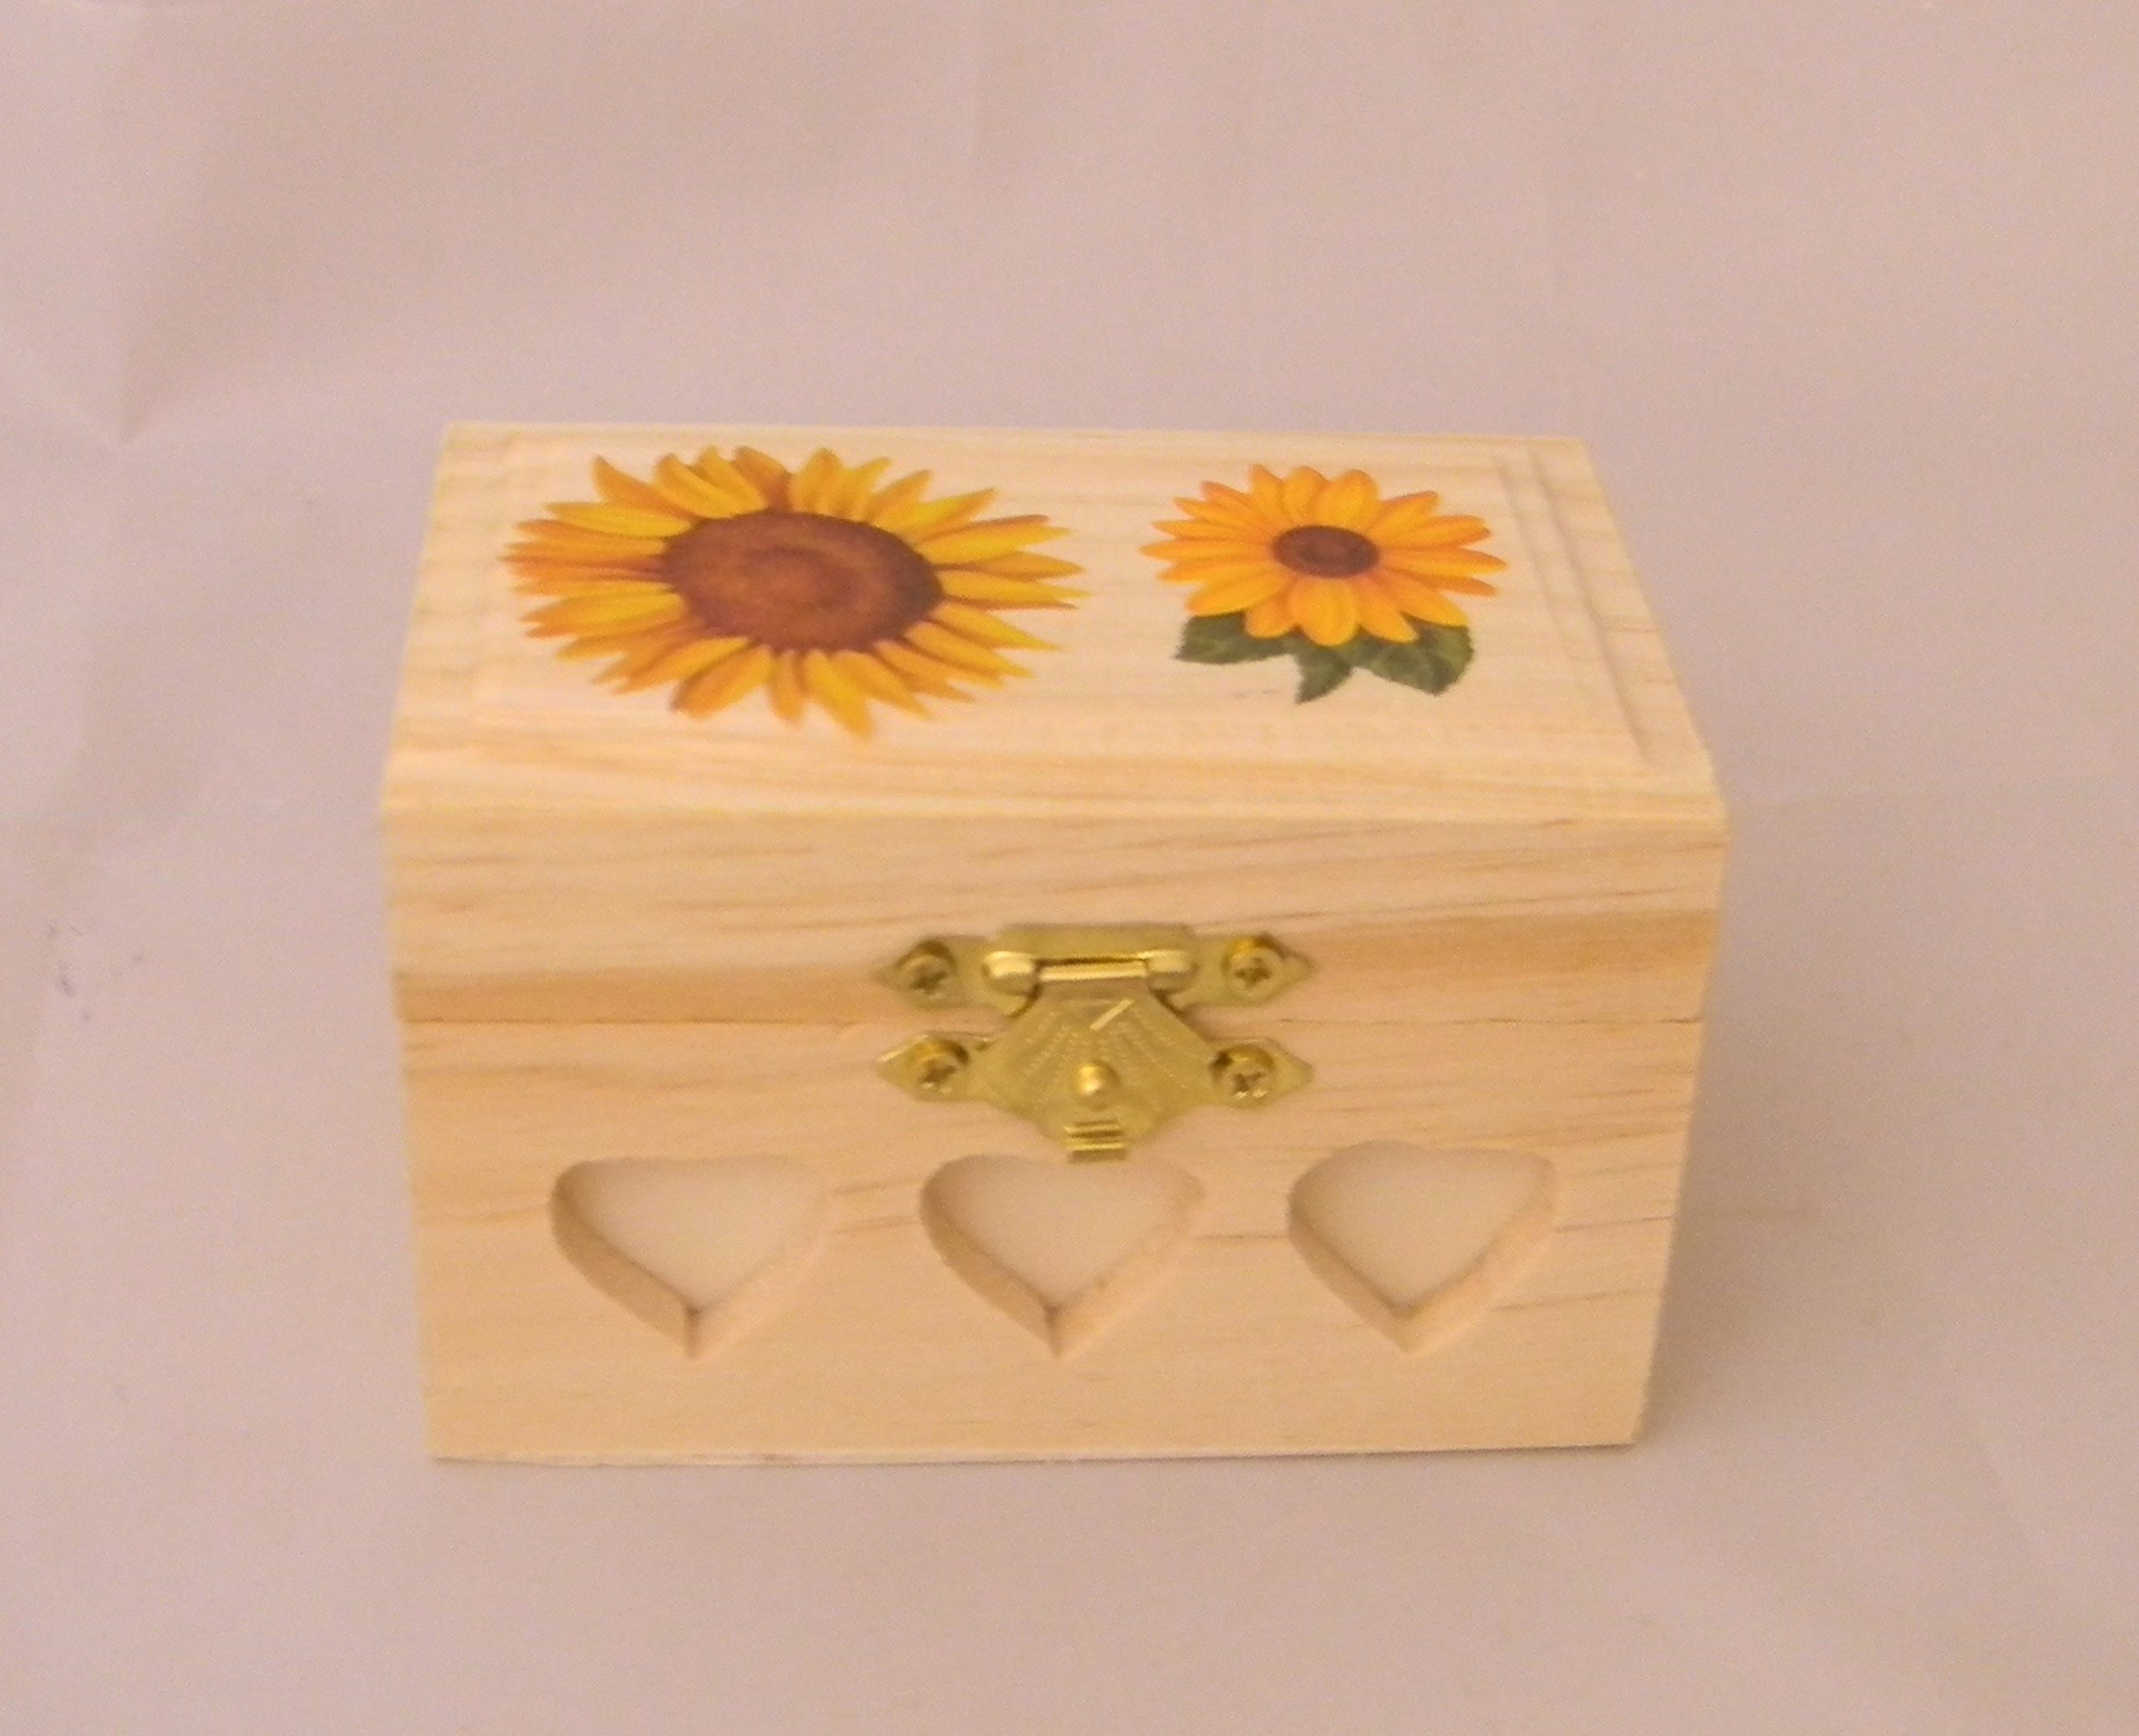 Wedding Ceremony Party Sunflower ring bearer pillow Box by Custom Design Wedding Supplies by Suzanne